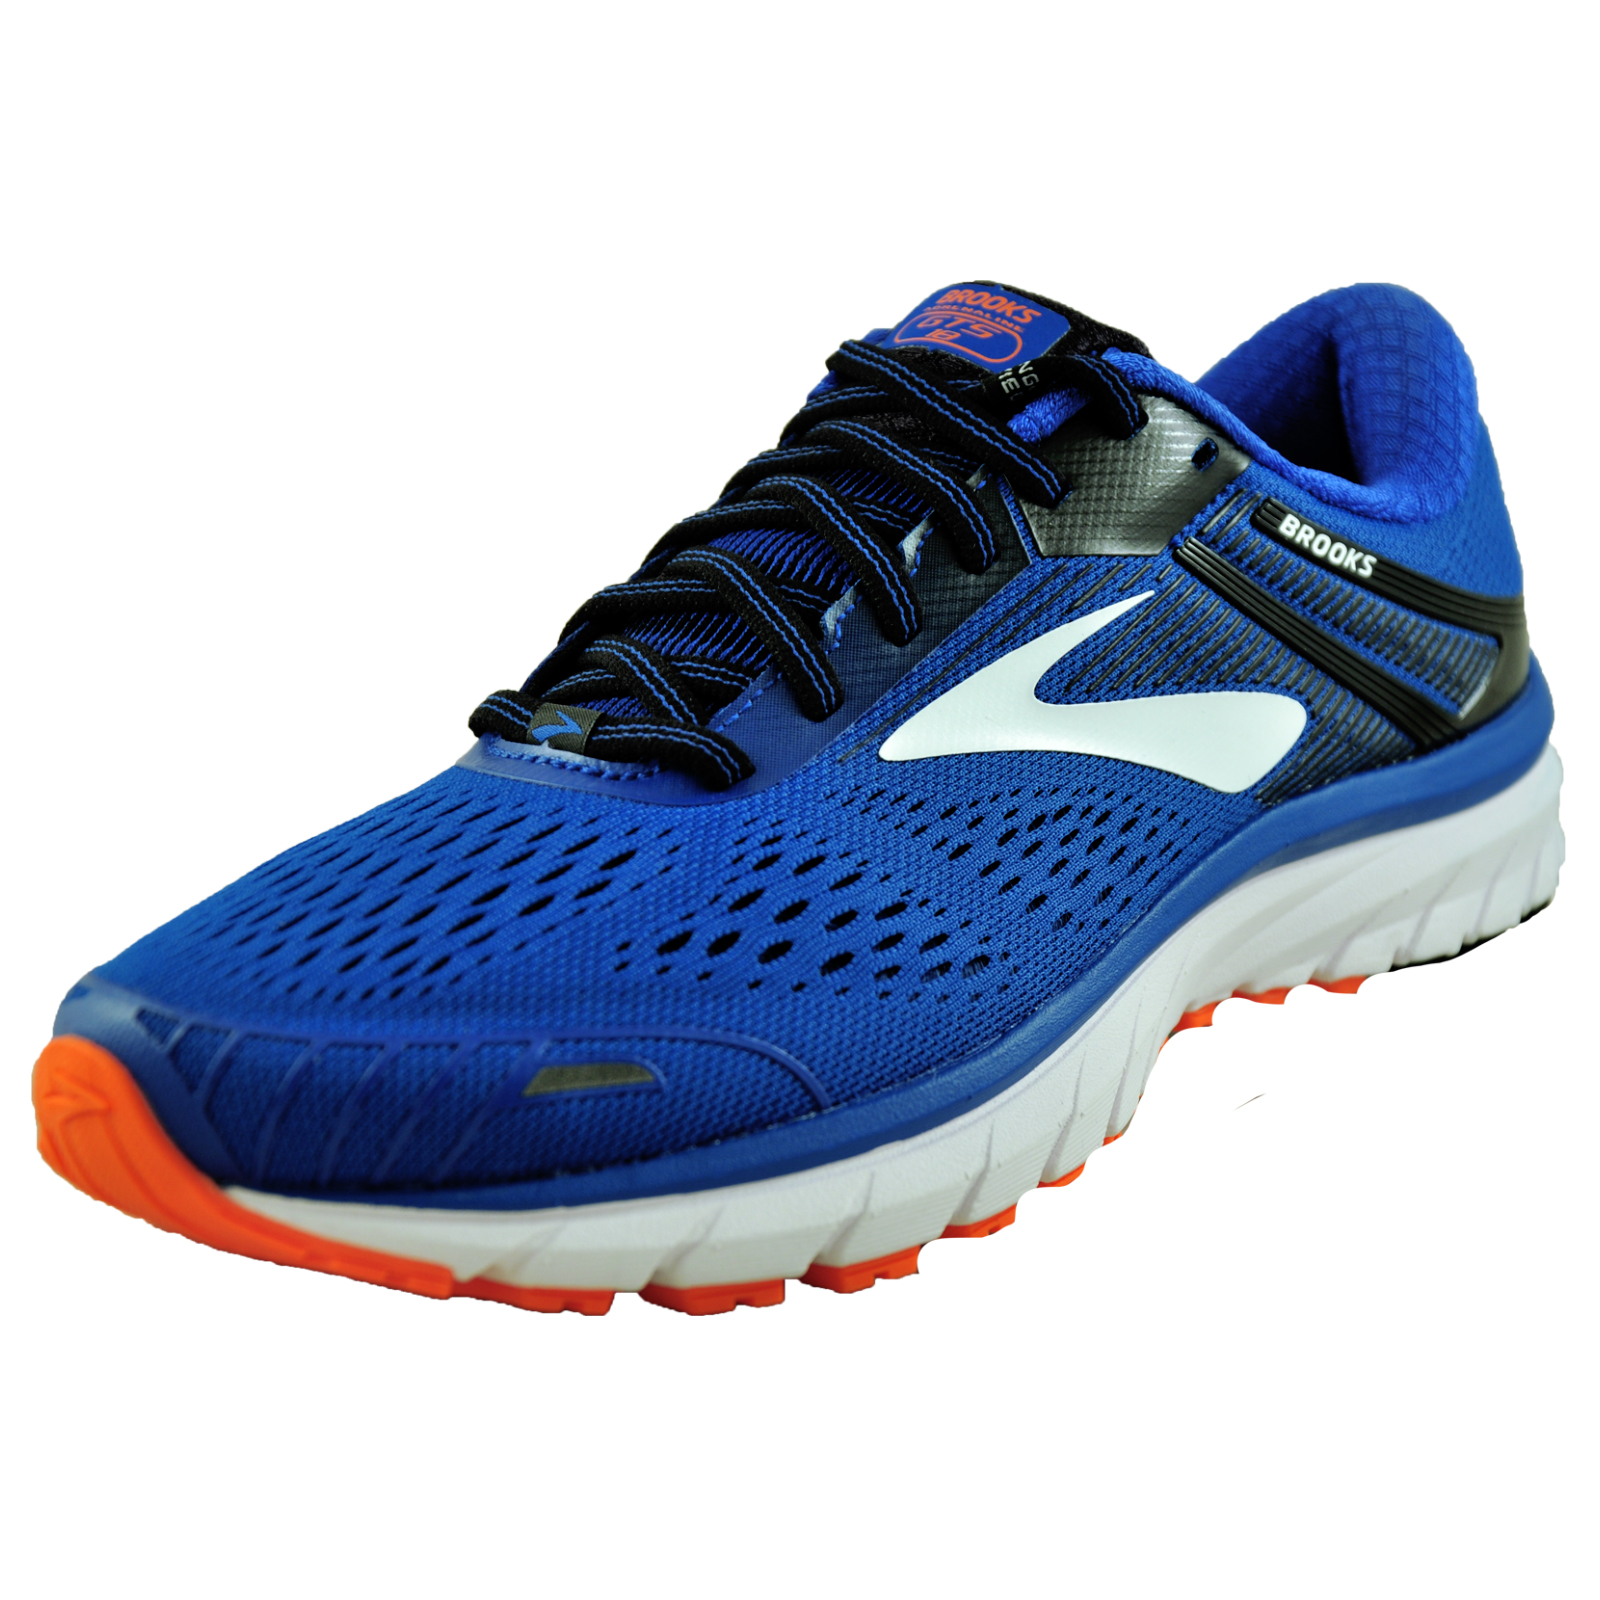 b0673e271ce Details about Brooks Adrenaline GTS 18 Support Men s Running Shoes Gym  Trainers